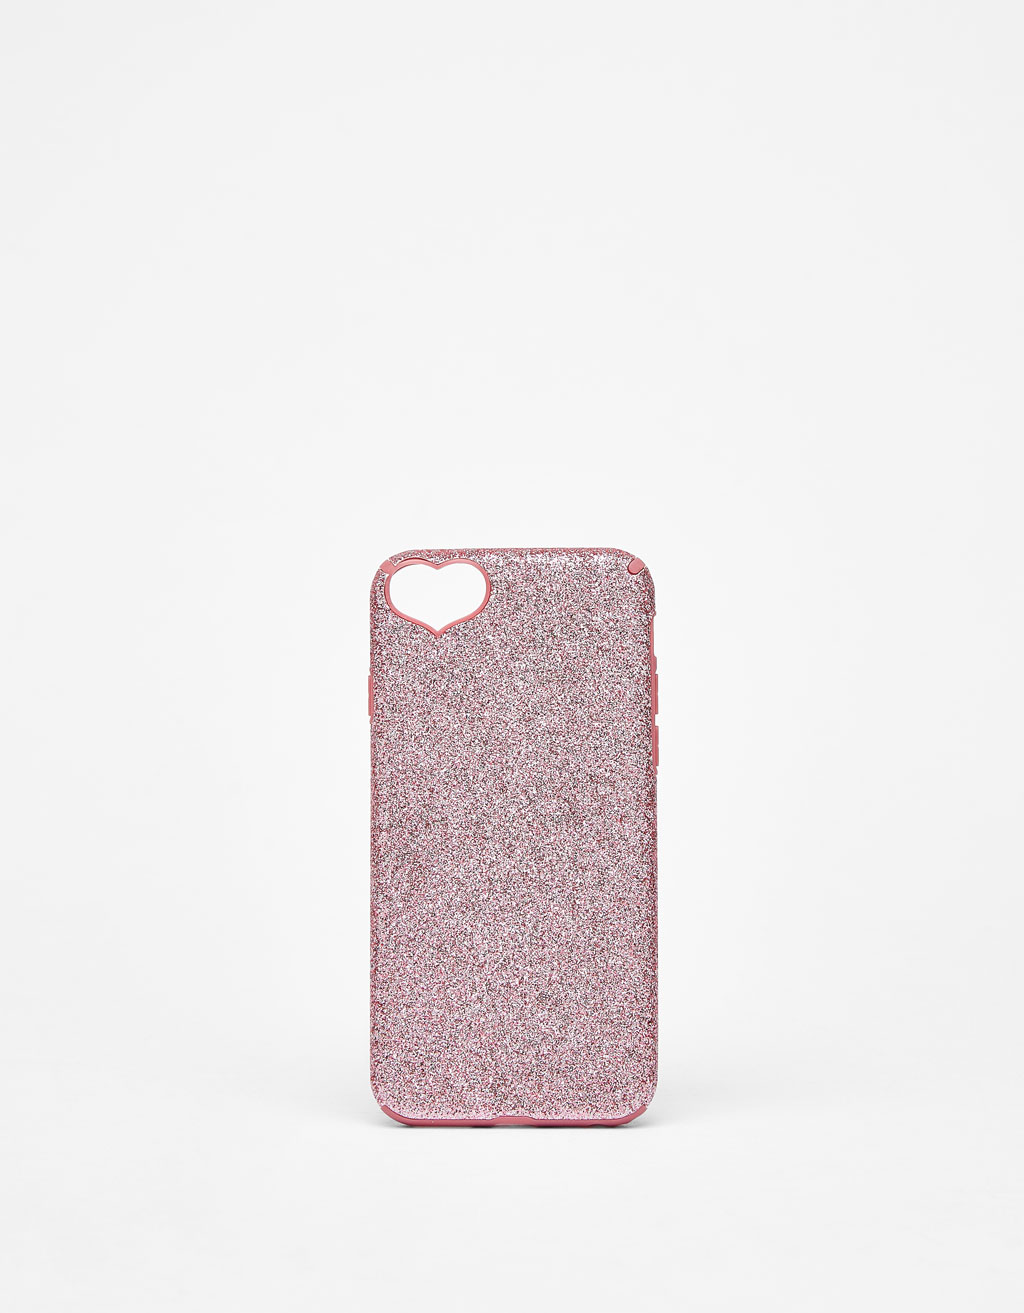 Carcasa con purpurina iPhone 6/6s/7